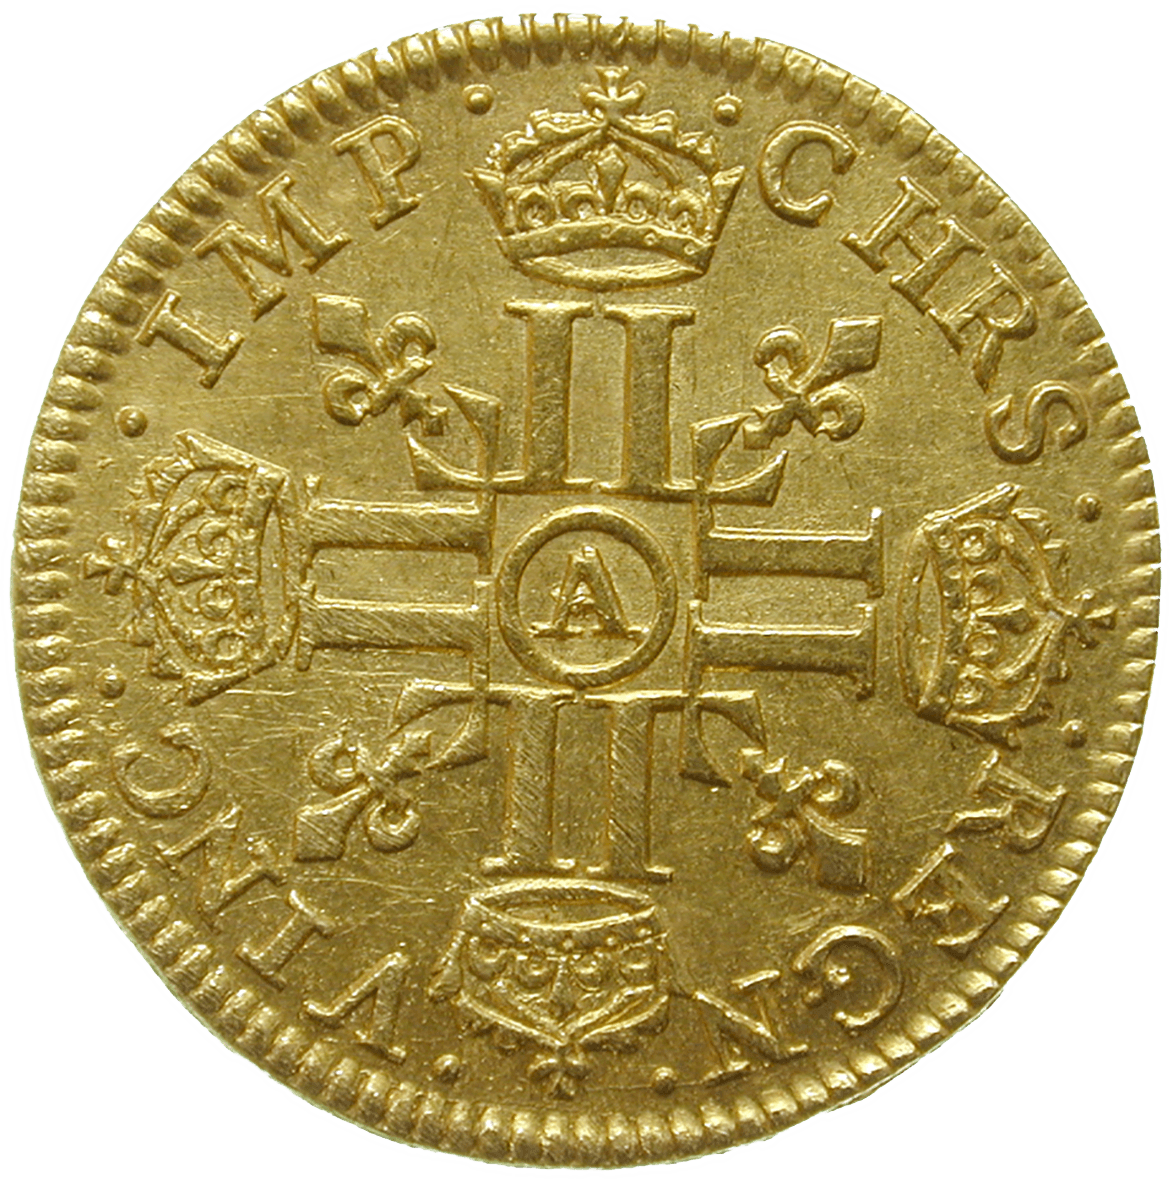 Kingdom of France, Louis XIII, 1/2 Louis d'or 1641 (reverse)